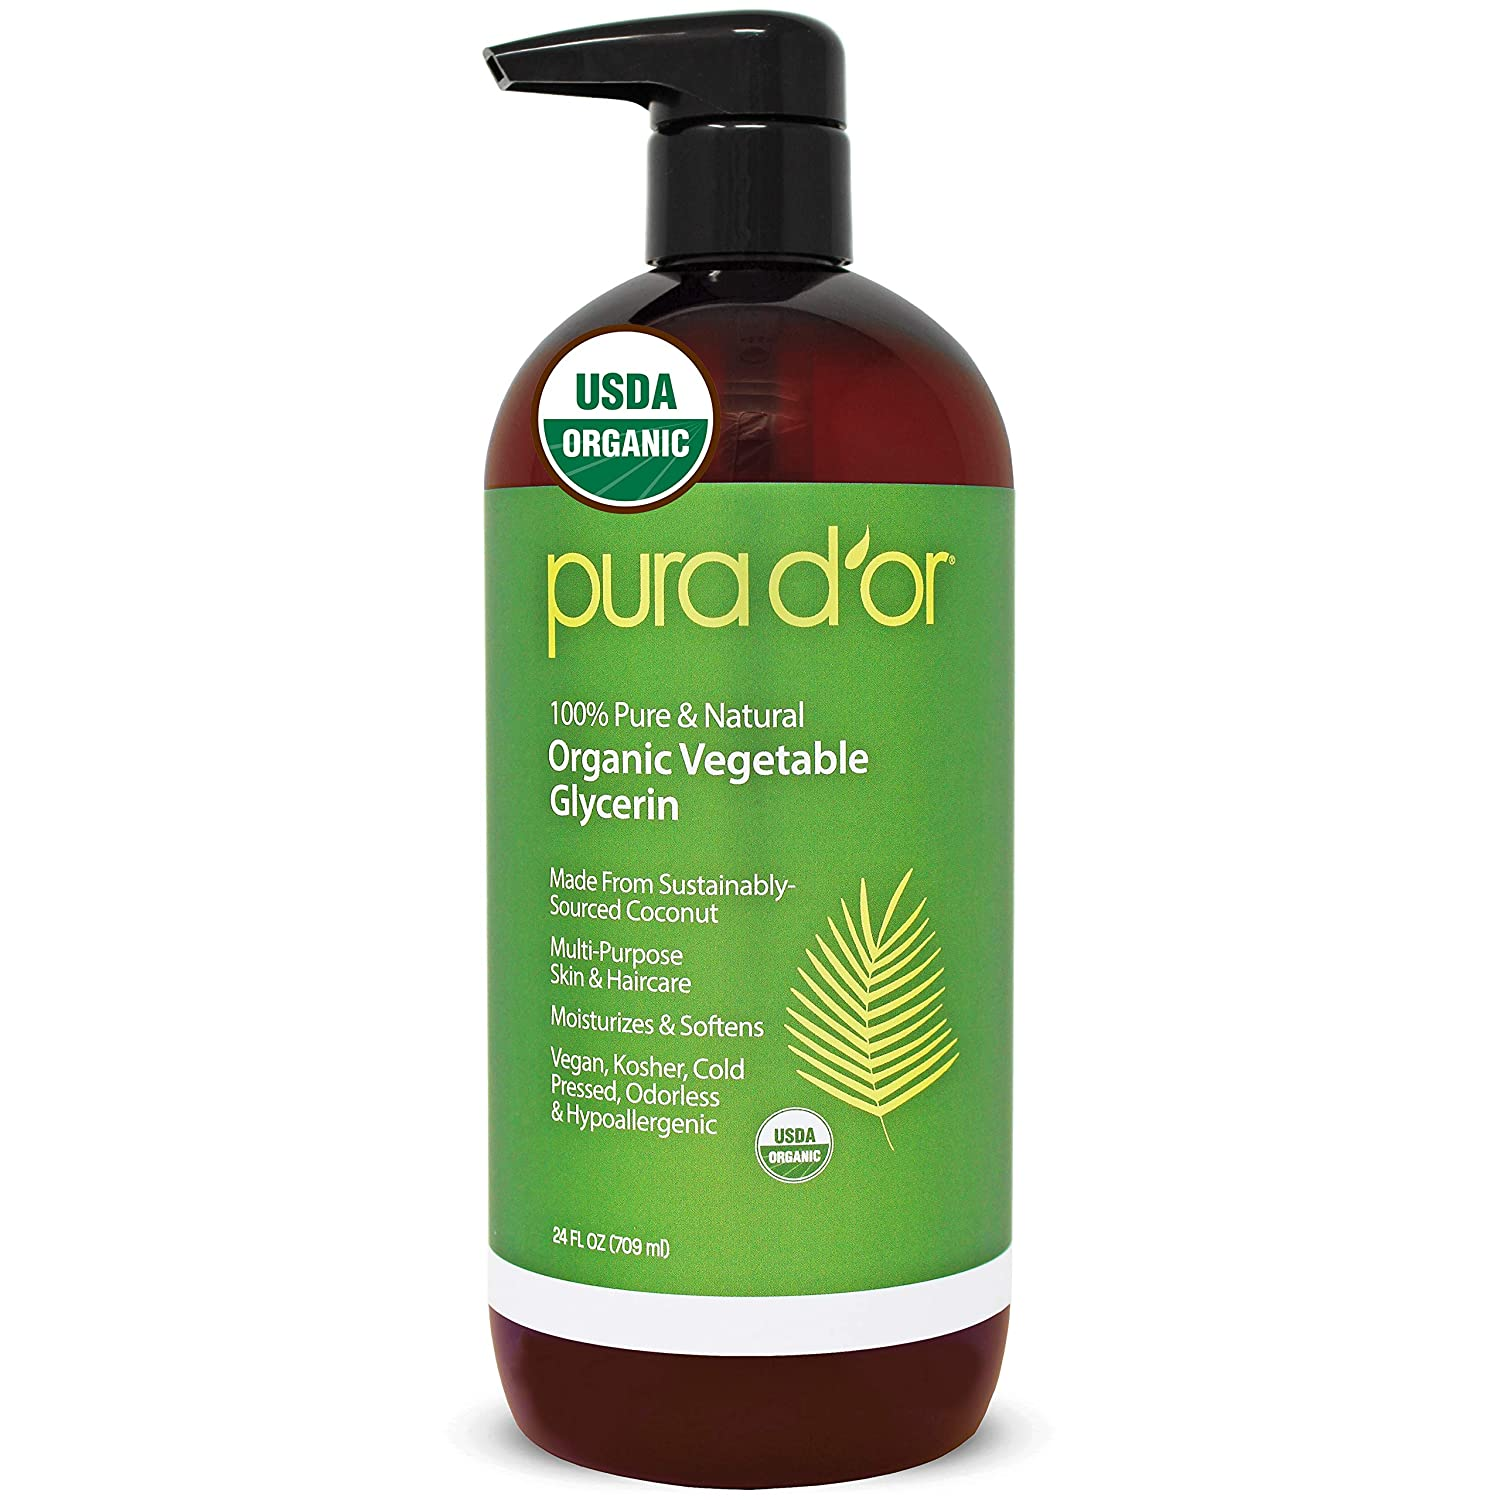 PURA D'OR Organic Vegetable Glycerin (24oz) Derived from Coconut, 100% Pure Premium Grade, Clear & Odorless, Non-GMO, USP Grade, Kosher, Vegan, Cold Pressed, Hair, Skin & DIY Base (Packaging may vary)